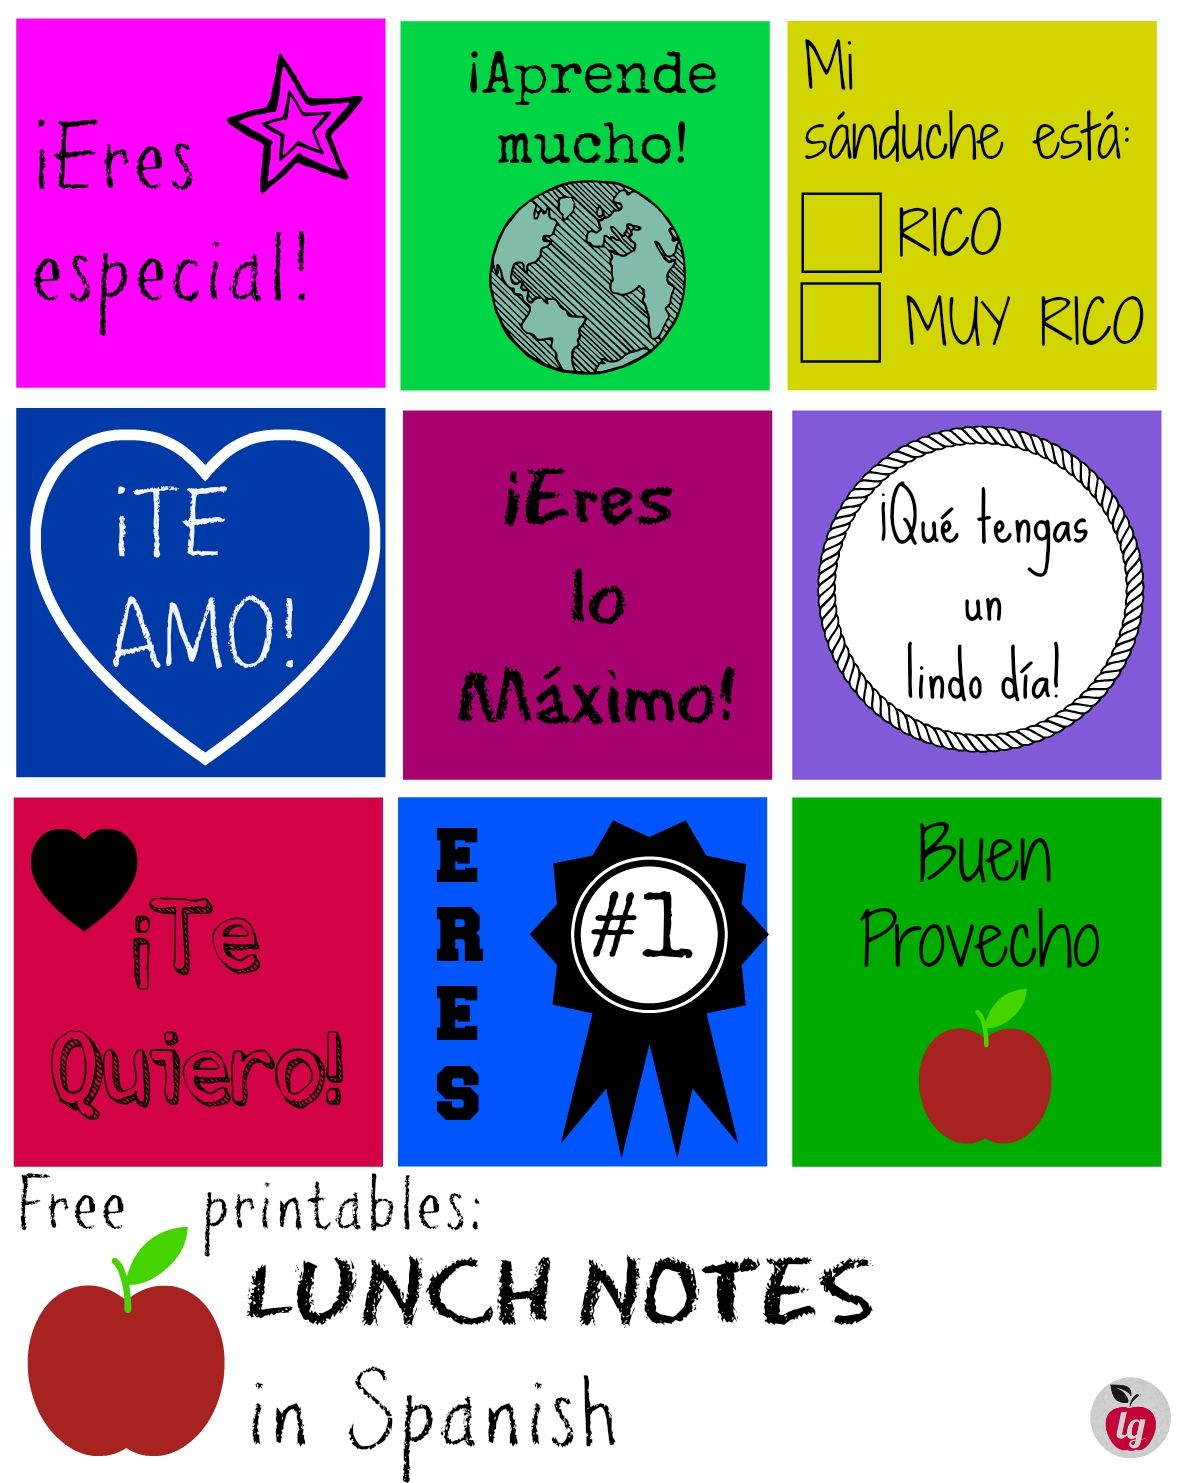 Free printables: lunch notes in Spanish